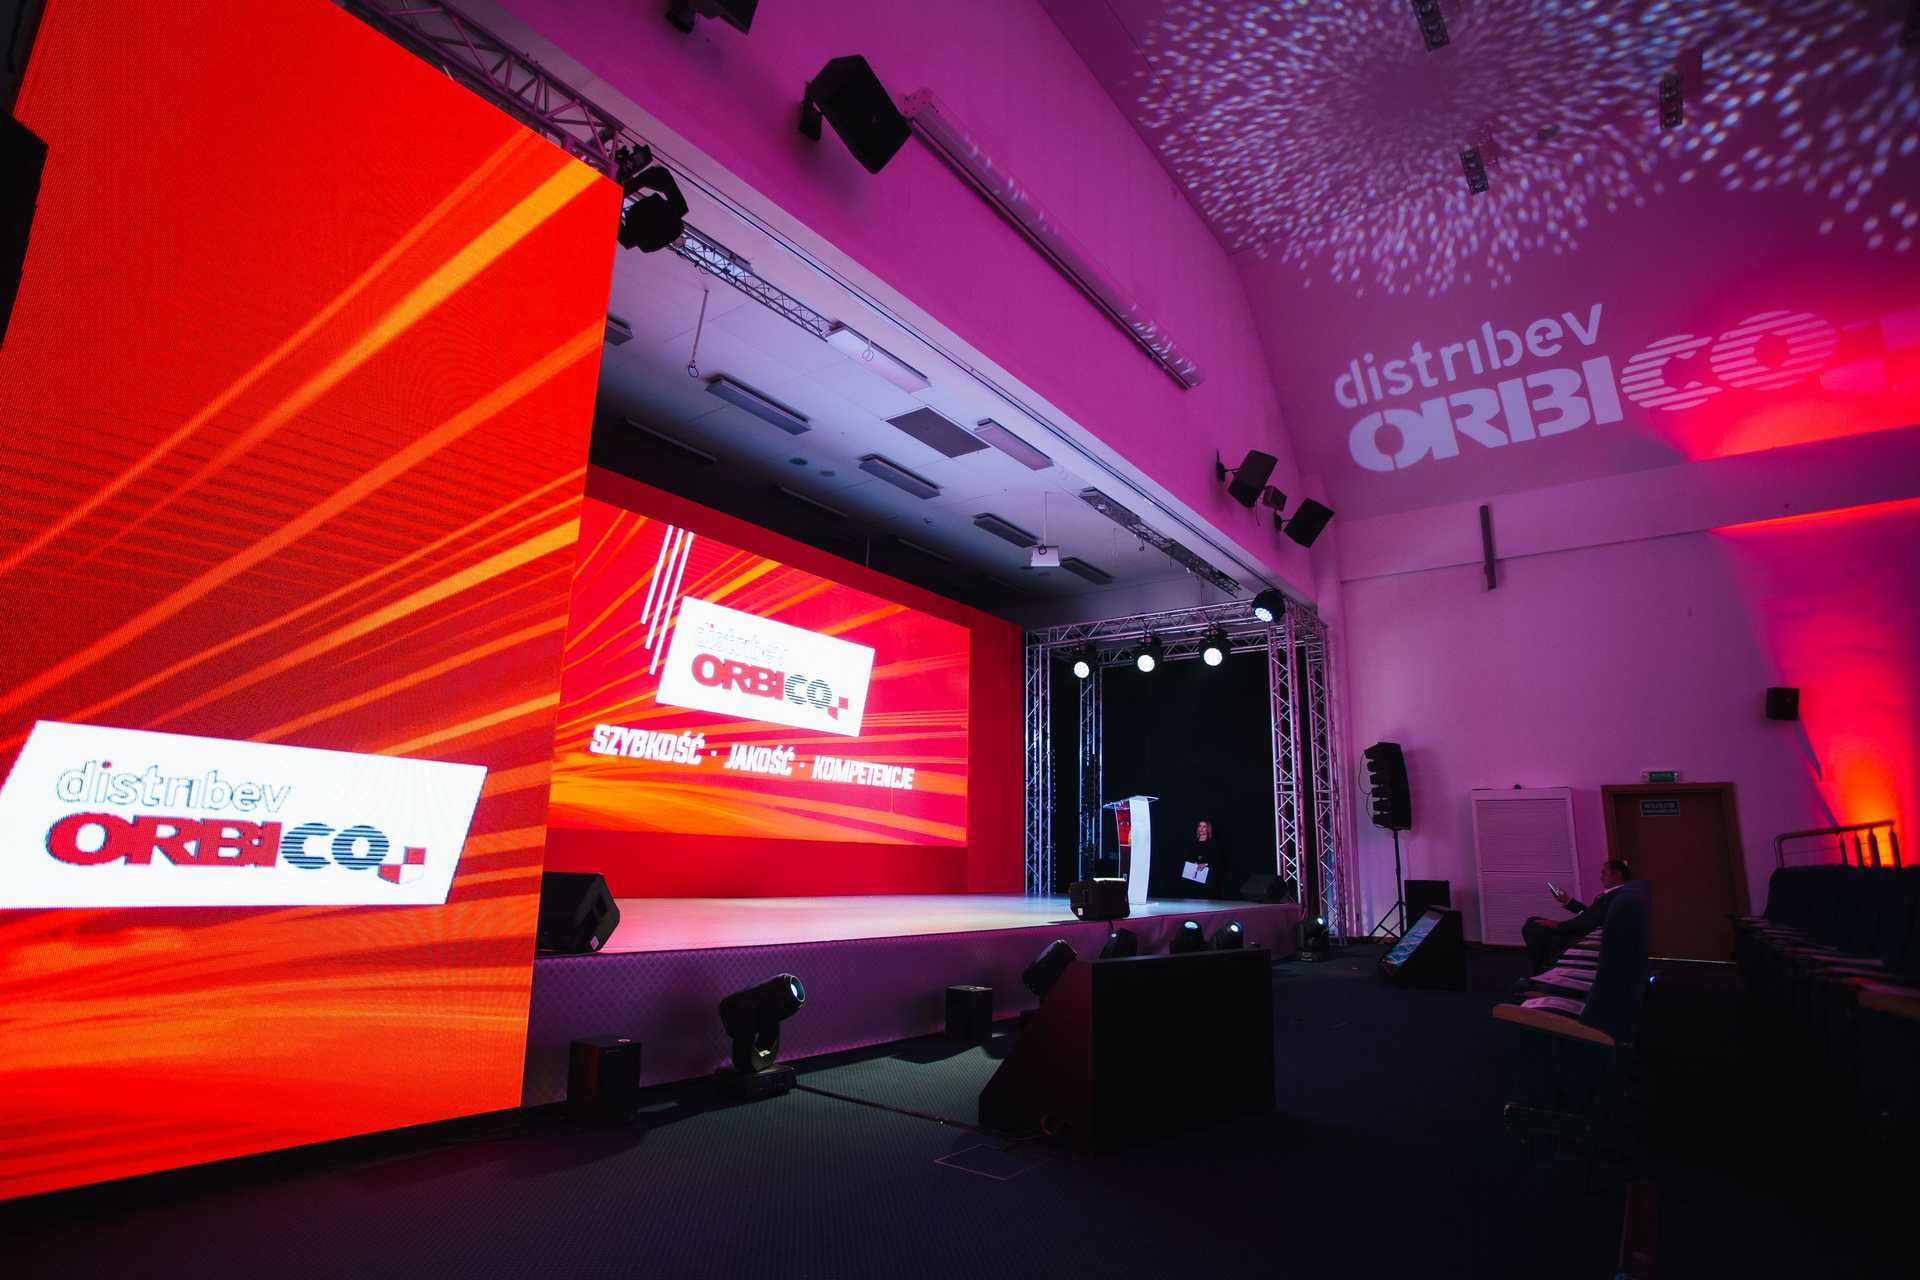 fswo_eventKonferencja Distribev Orbico 2018 (037)